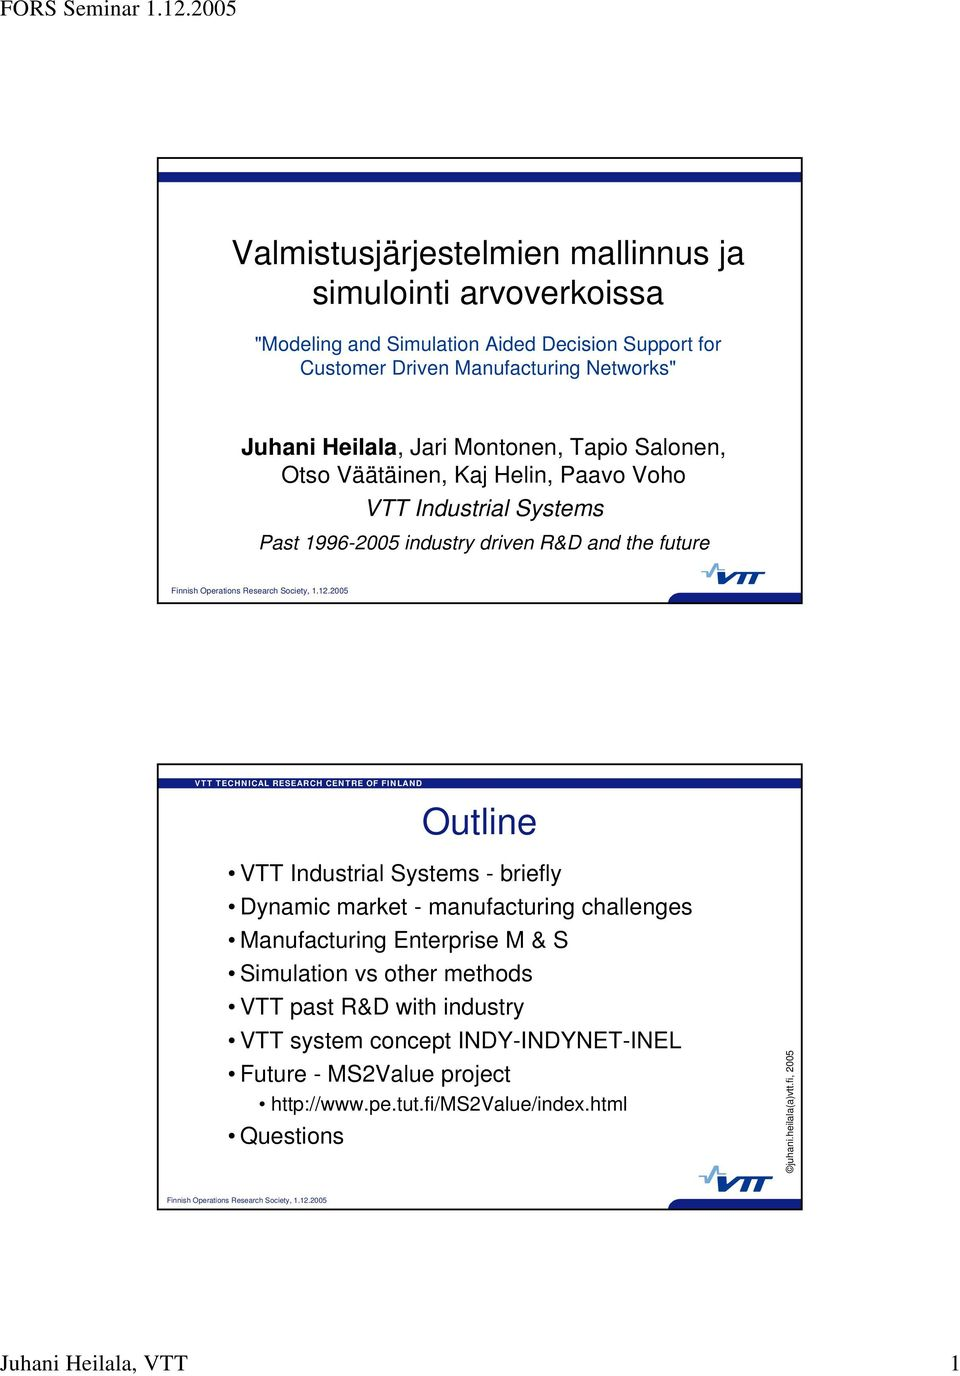 future Outline VTT Industrial Systems - briefly Dynamic market - manufacturing challenges Manufacturing Enterprise M & S Simulation vs other methods VTT